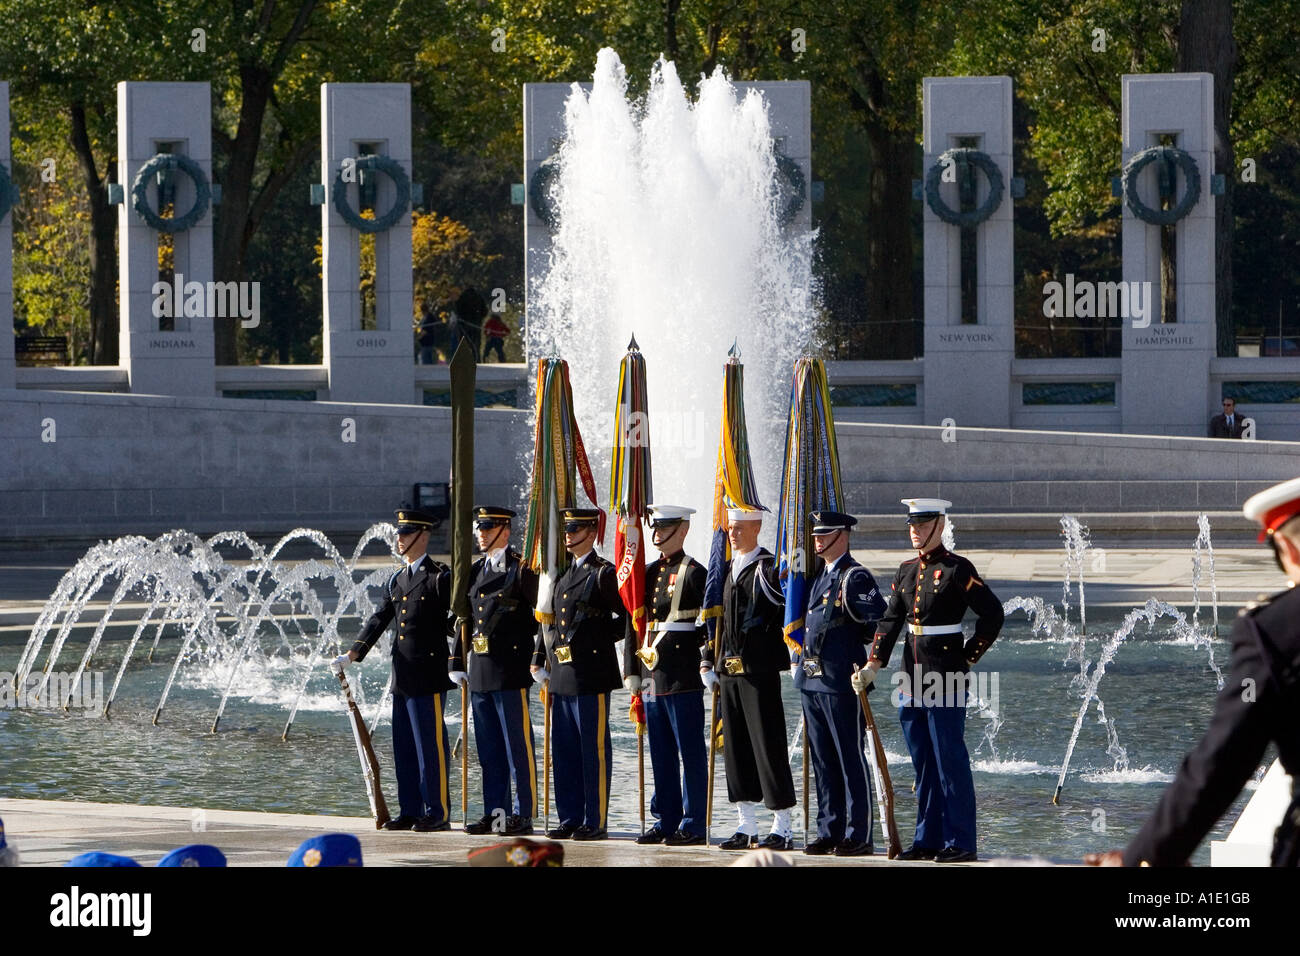 Servicemen at the National World War II Memorial Washington DC United States of America - Stock Image